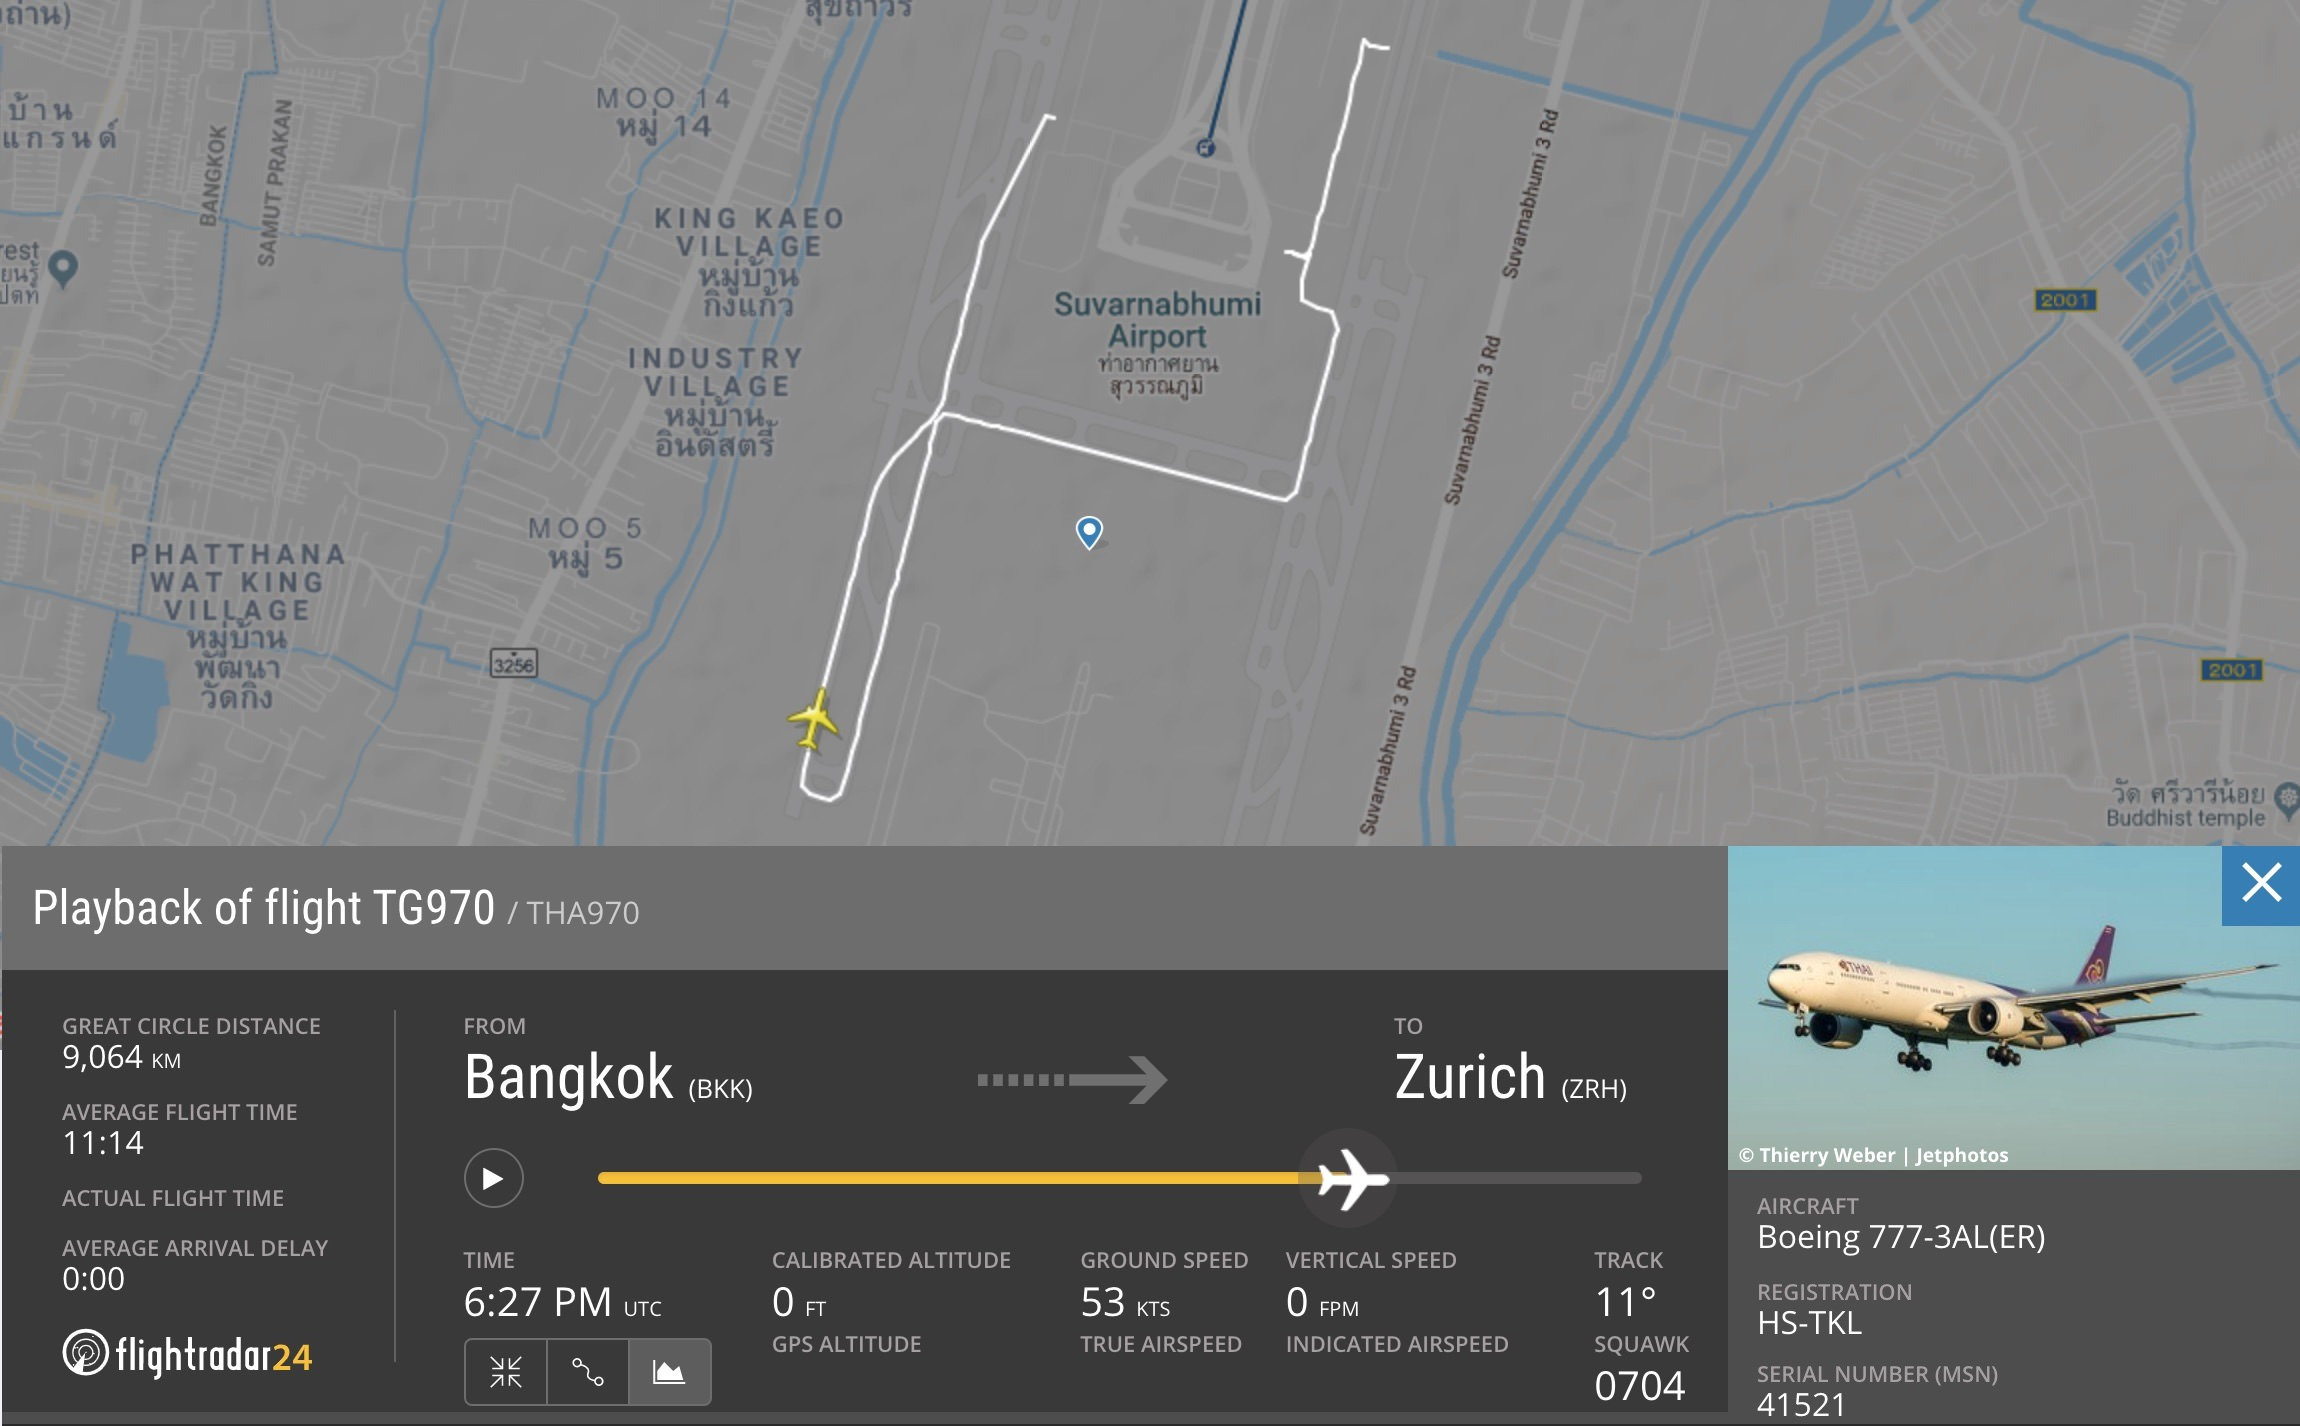 Path of TG970 engine failure rejected takeoff